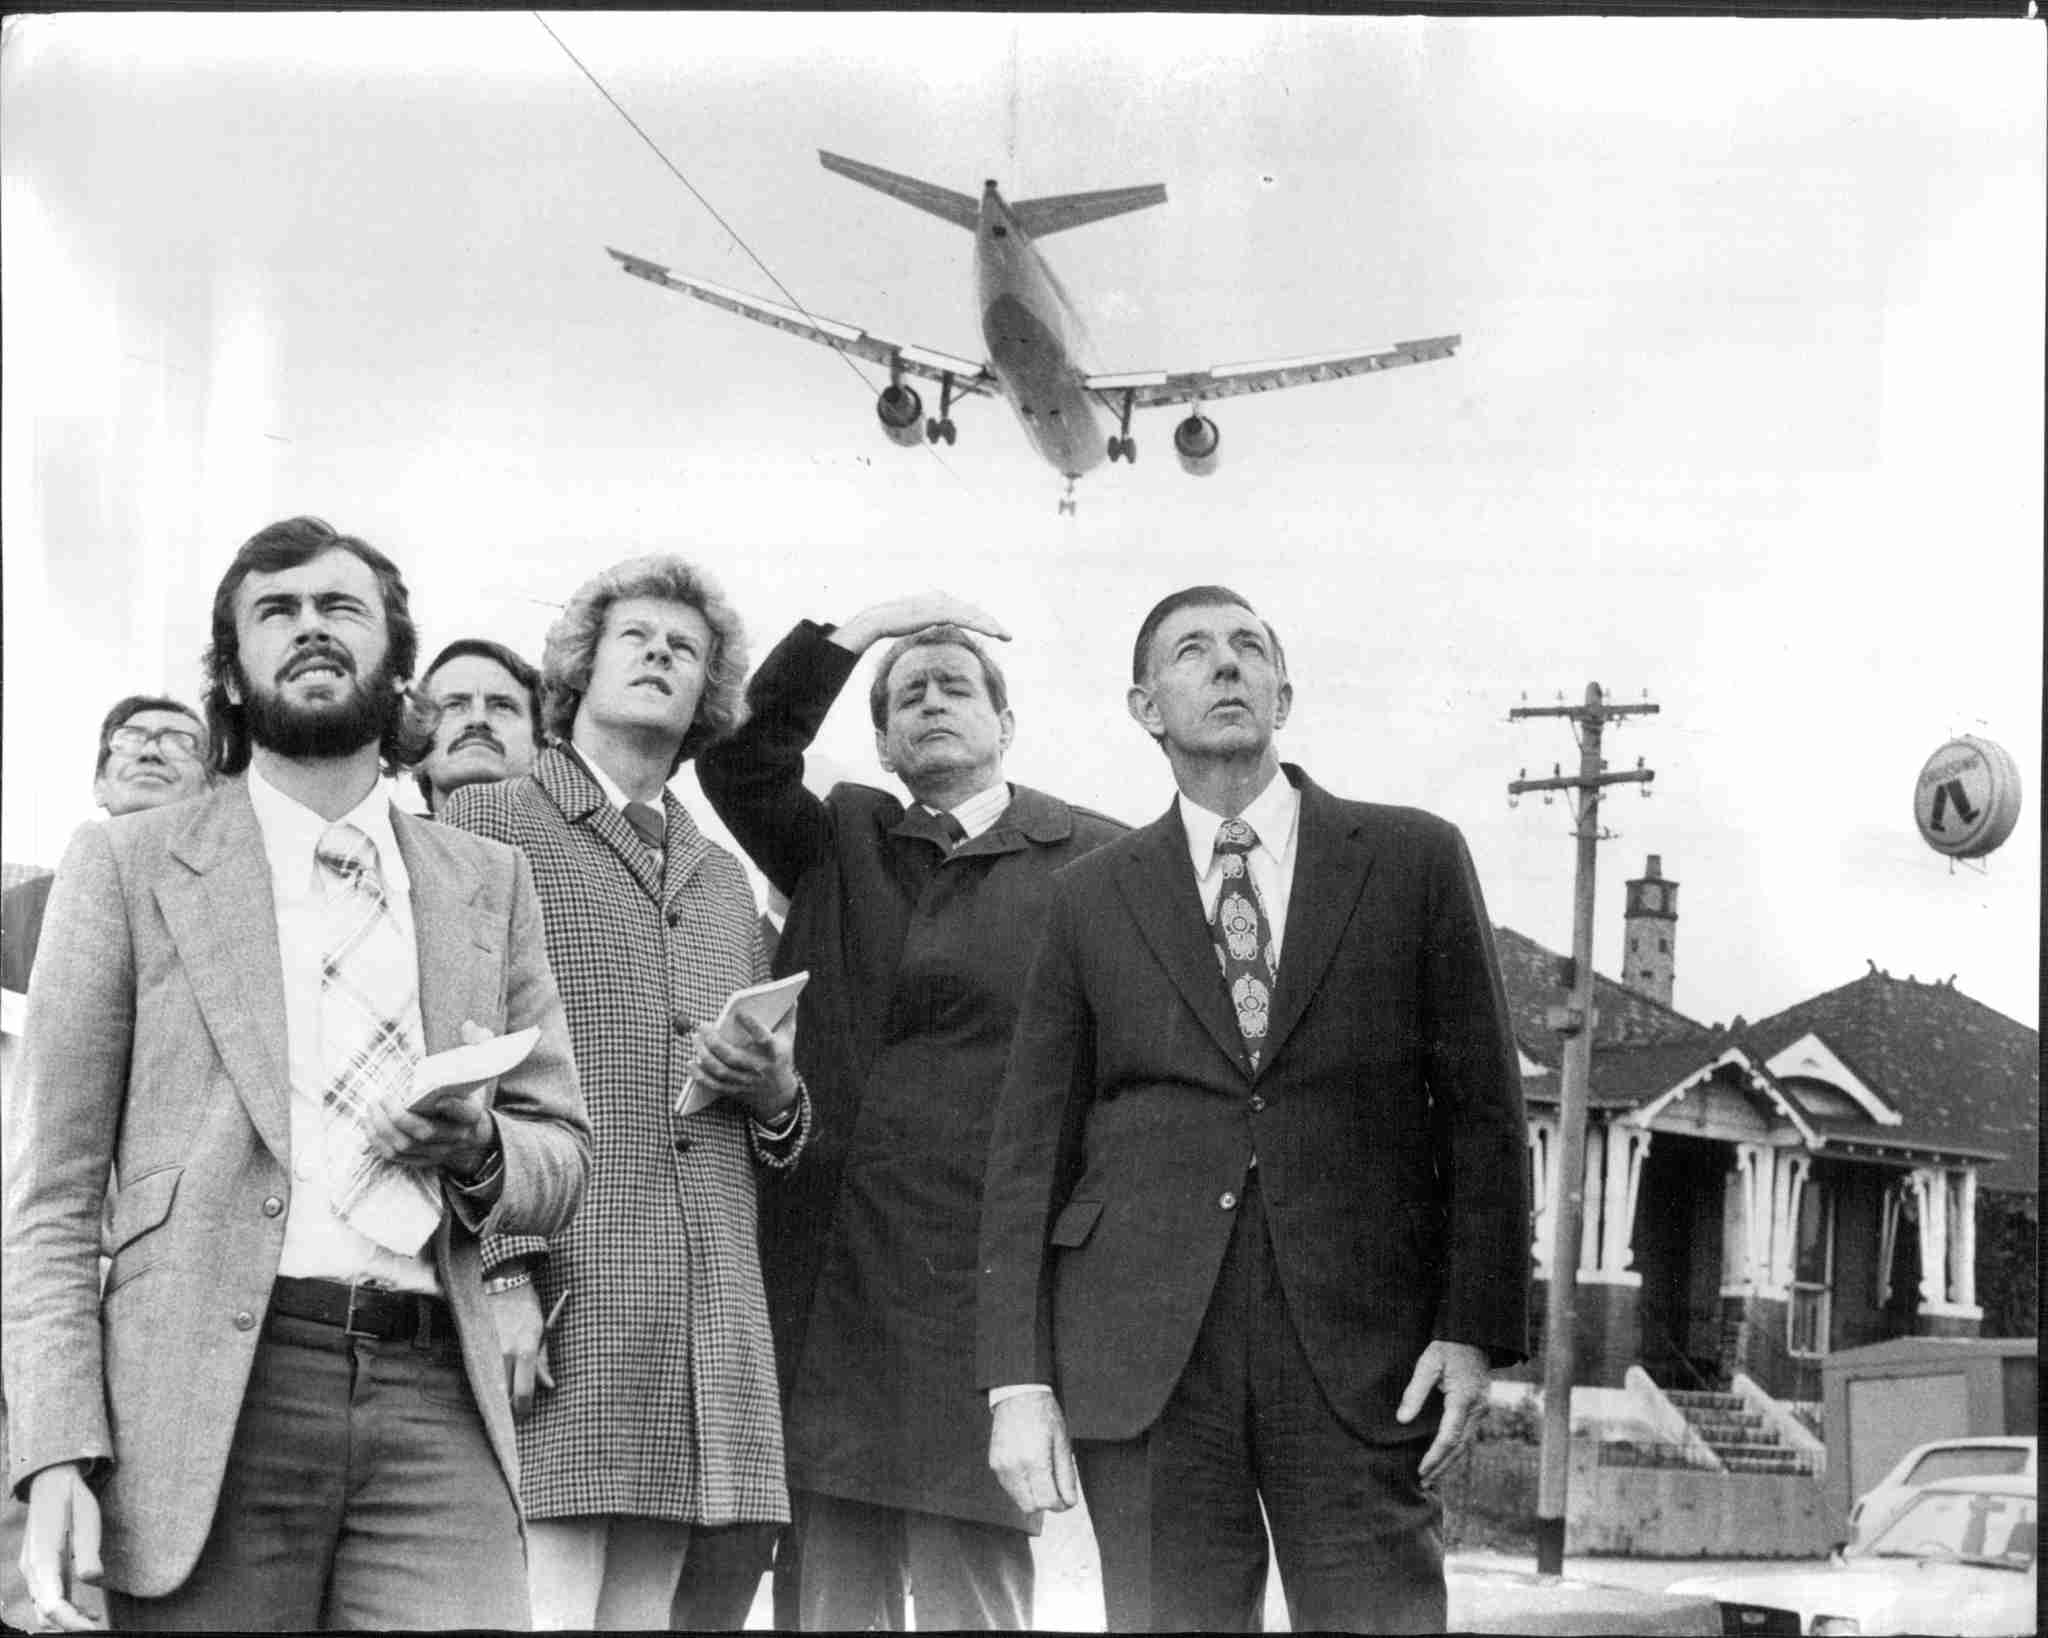 Federal Transport Minister, Charles Jones together with members of the press, Airbus officials and Department of Civil Aviation Officers listen to the noise made by the European A300 Airbus as it lands over the roofs of homes at Sydenham. May 28, 1974. (Photo by Trevor James Robert Dallen/Fairfax Media via Getty Images).